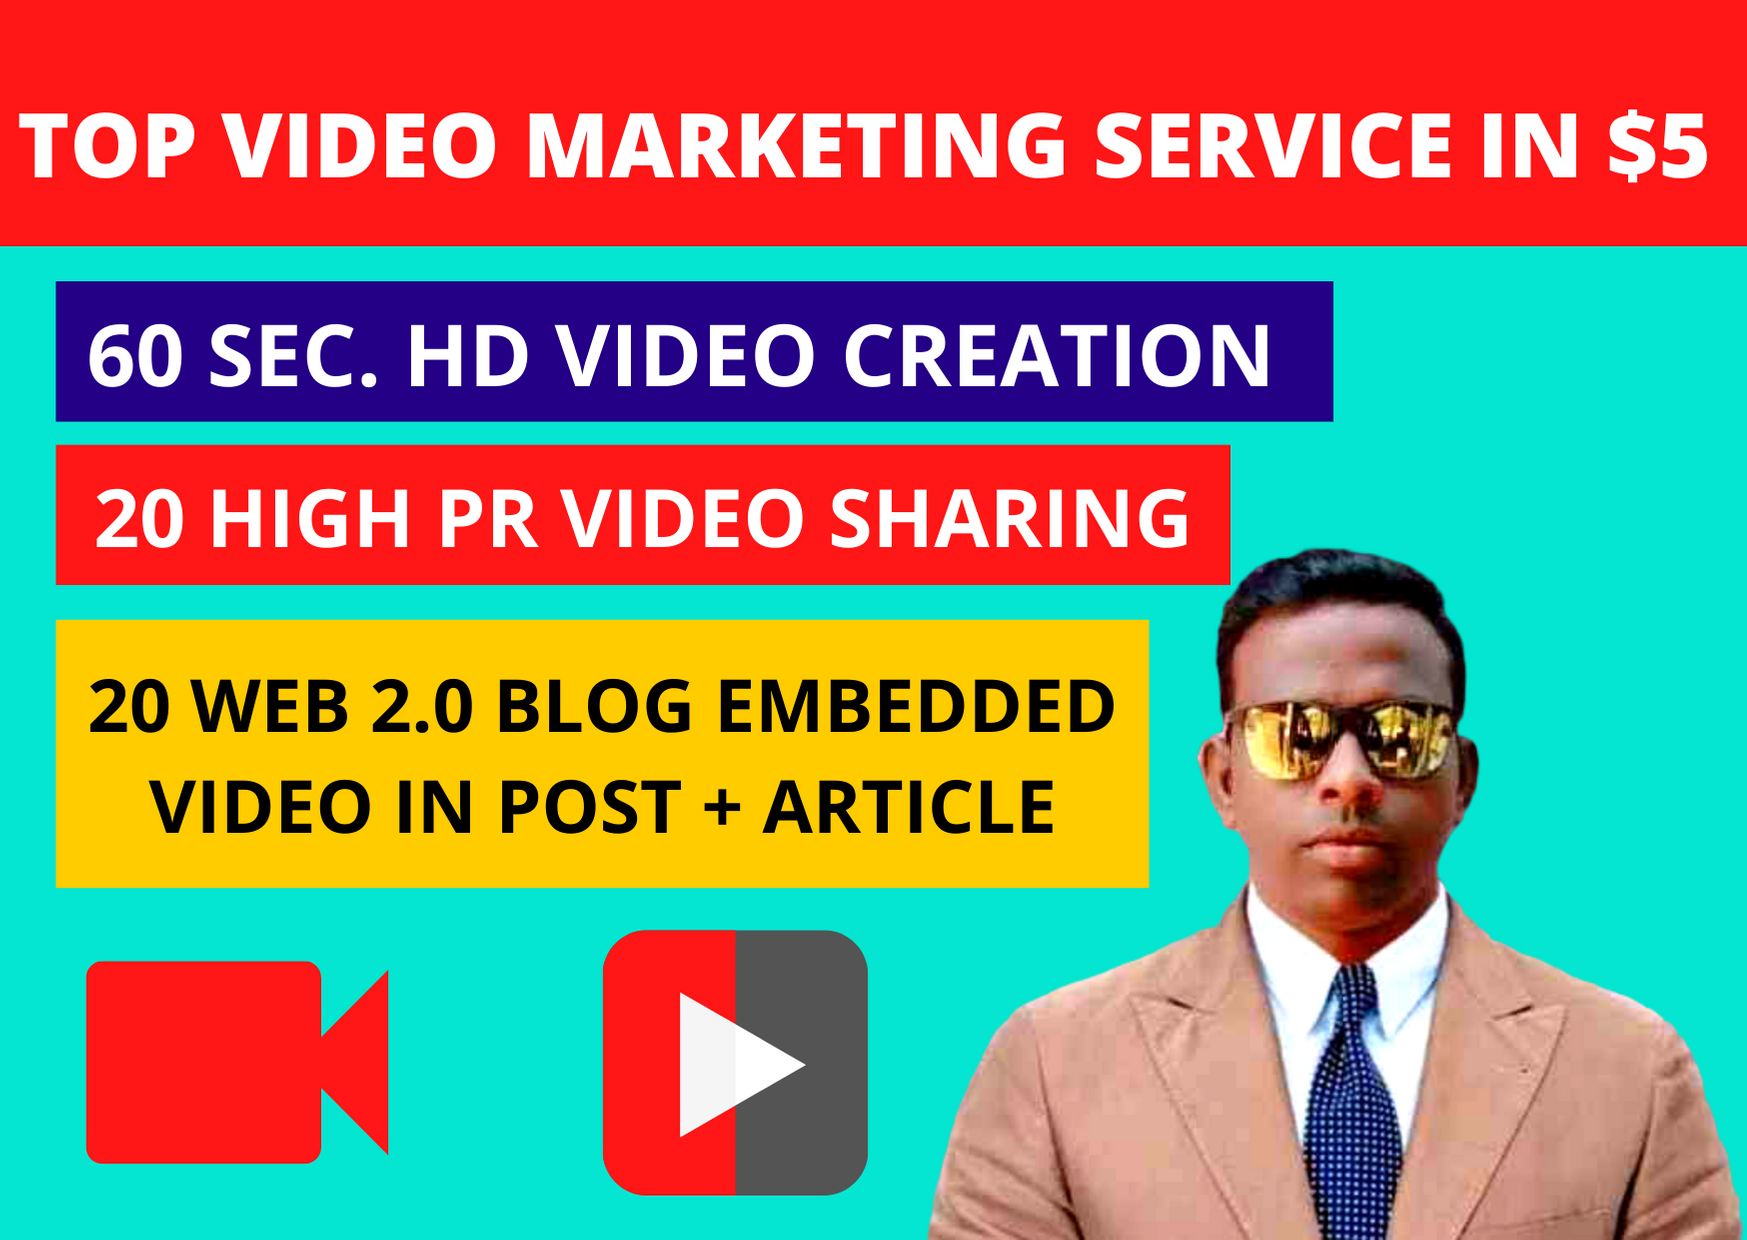 video creation and video submission on 20 high PR sites & 20 Web 2.0 Blogs best for off page SEO